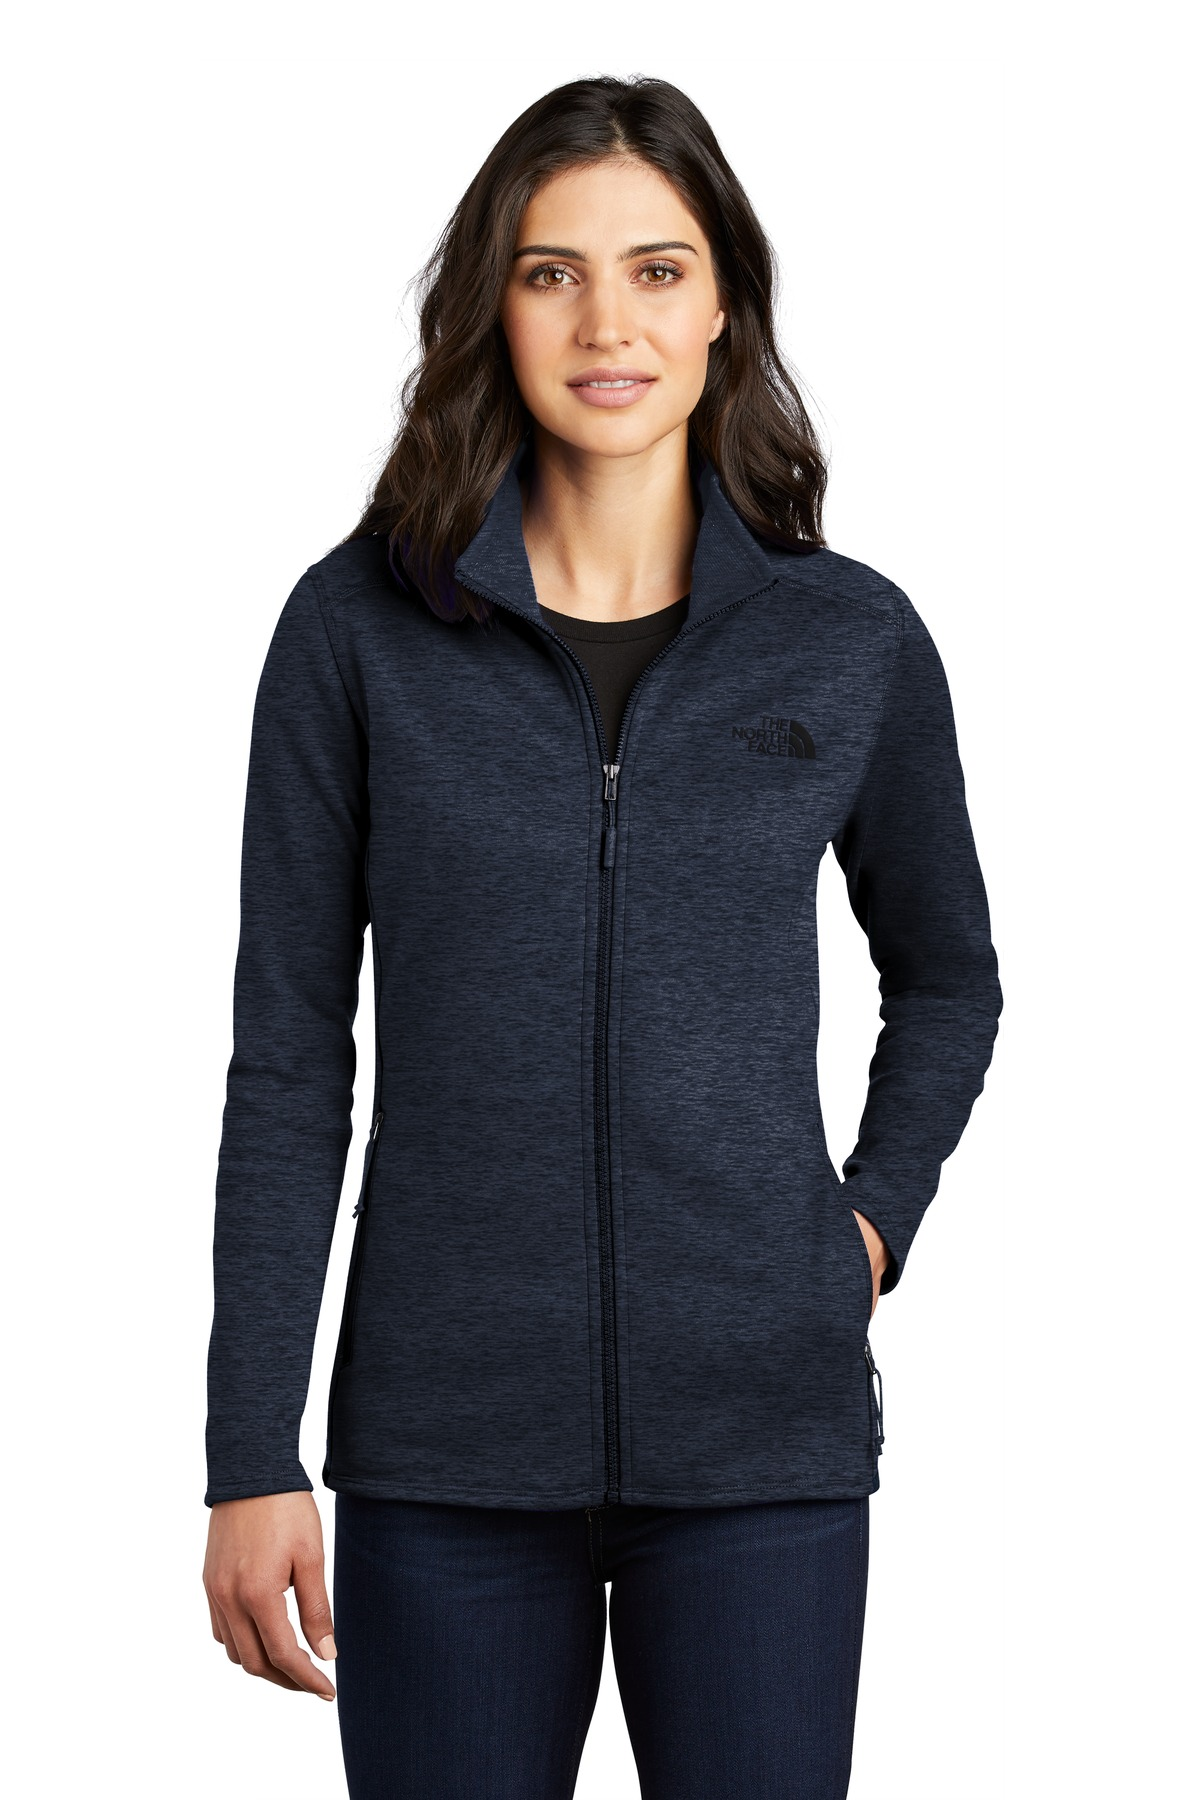 The North Face  ®  Ladies Skyline Full-Zip Fleece Jacket NF0A47F6 - Urban Navy Heather